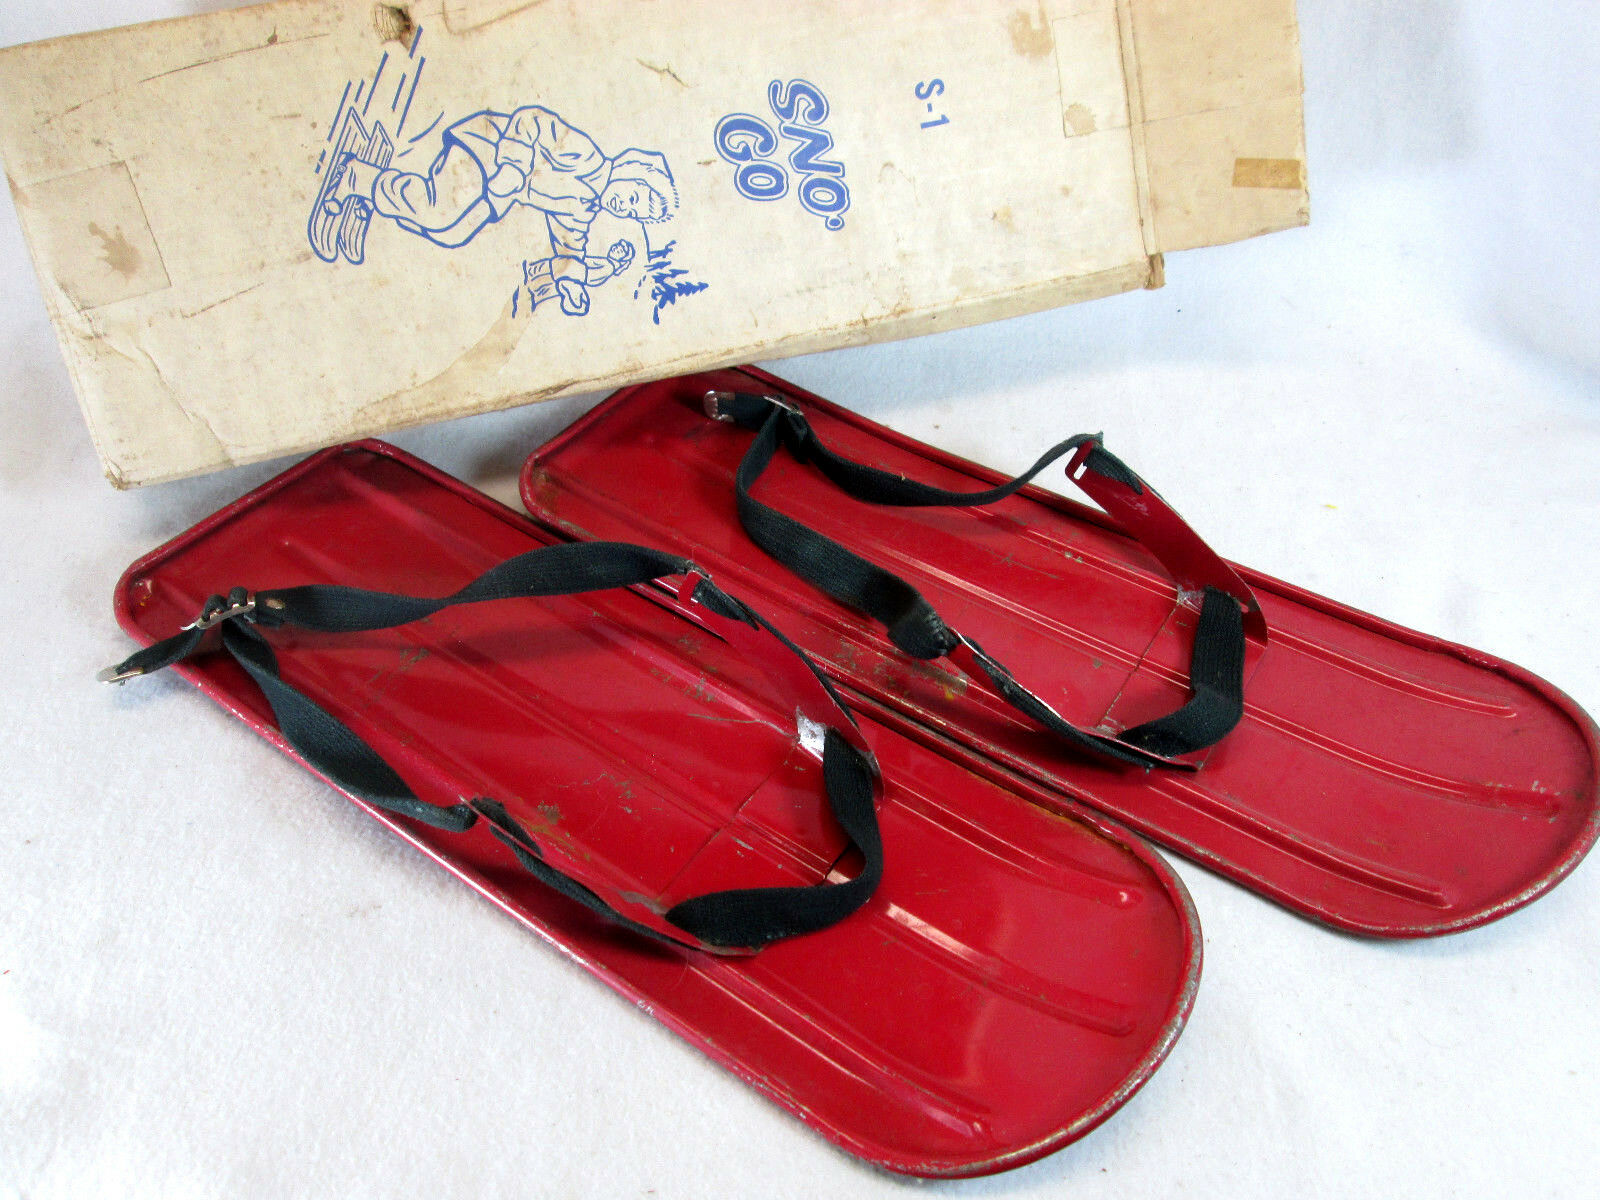 Vintage 1950's Sno-Go metal snow shoes set by Barry Toycraft   outlet factory shop